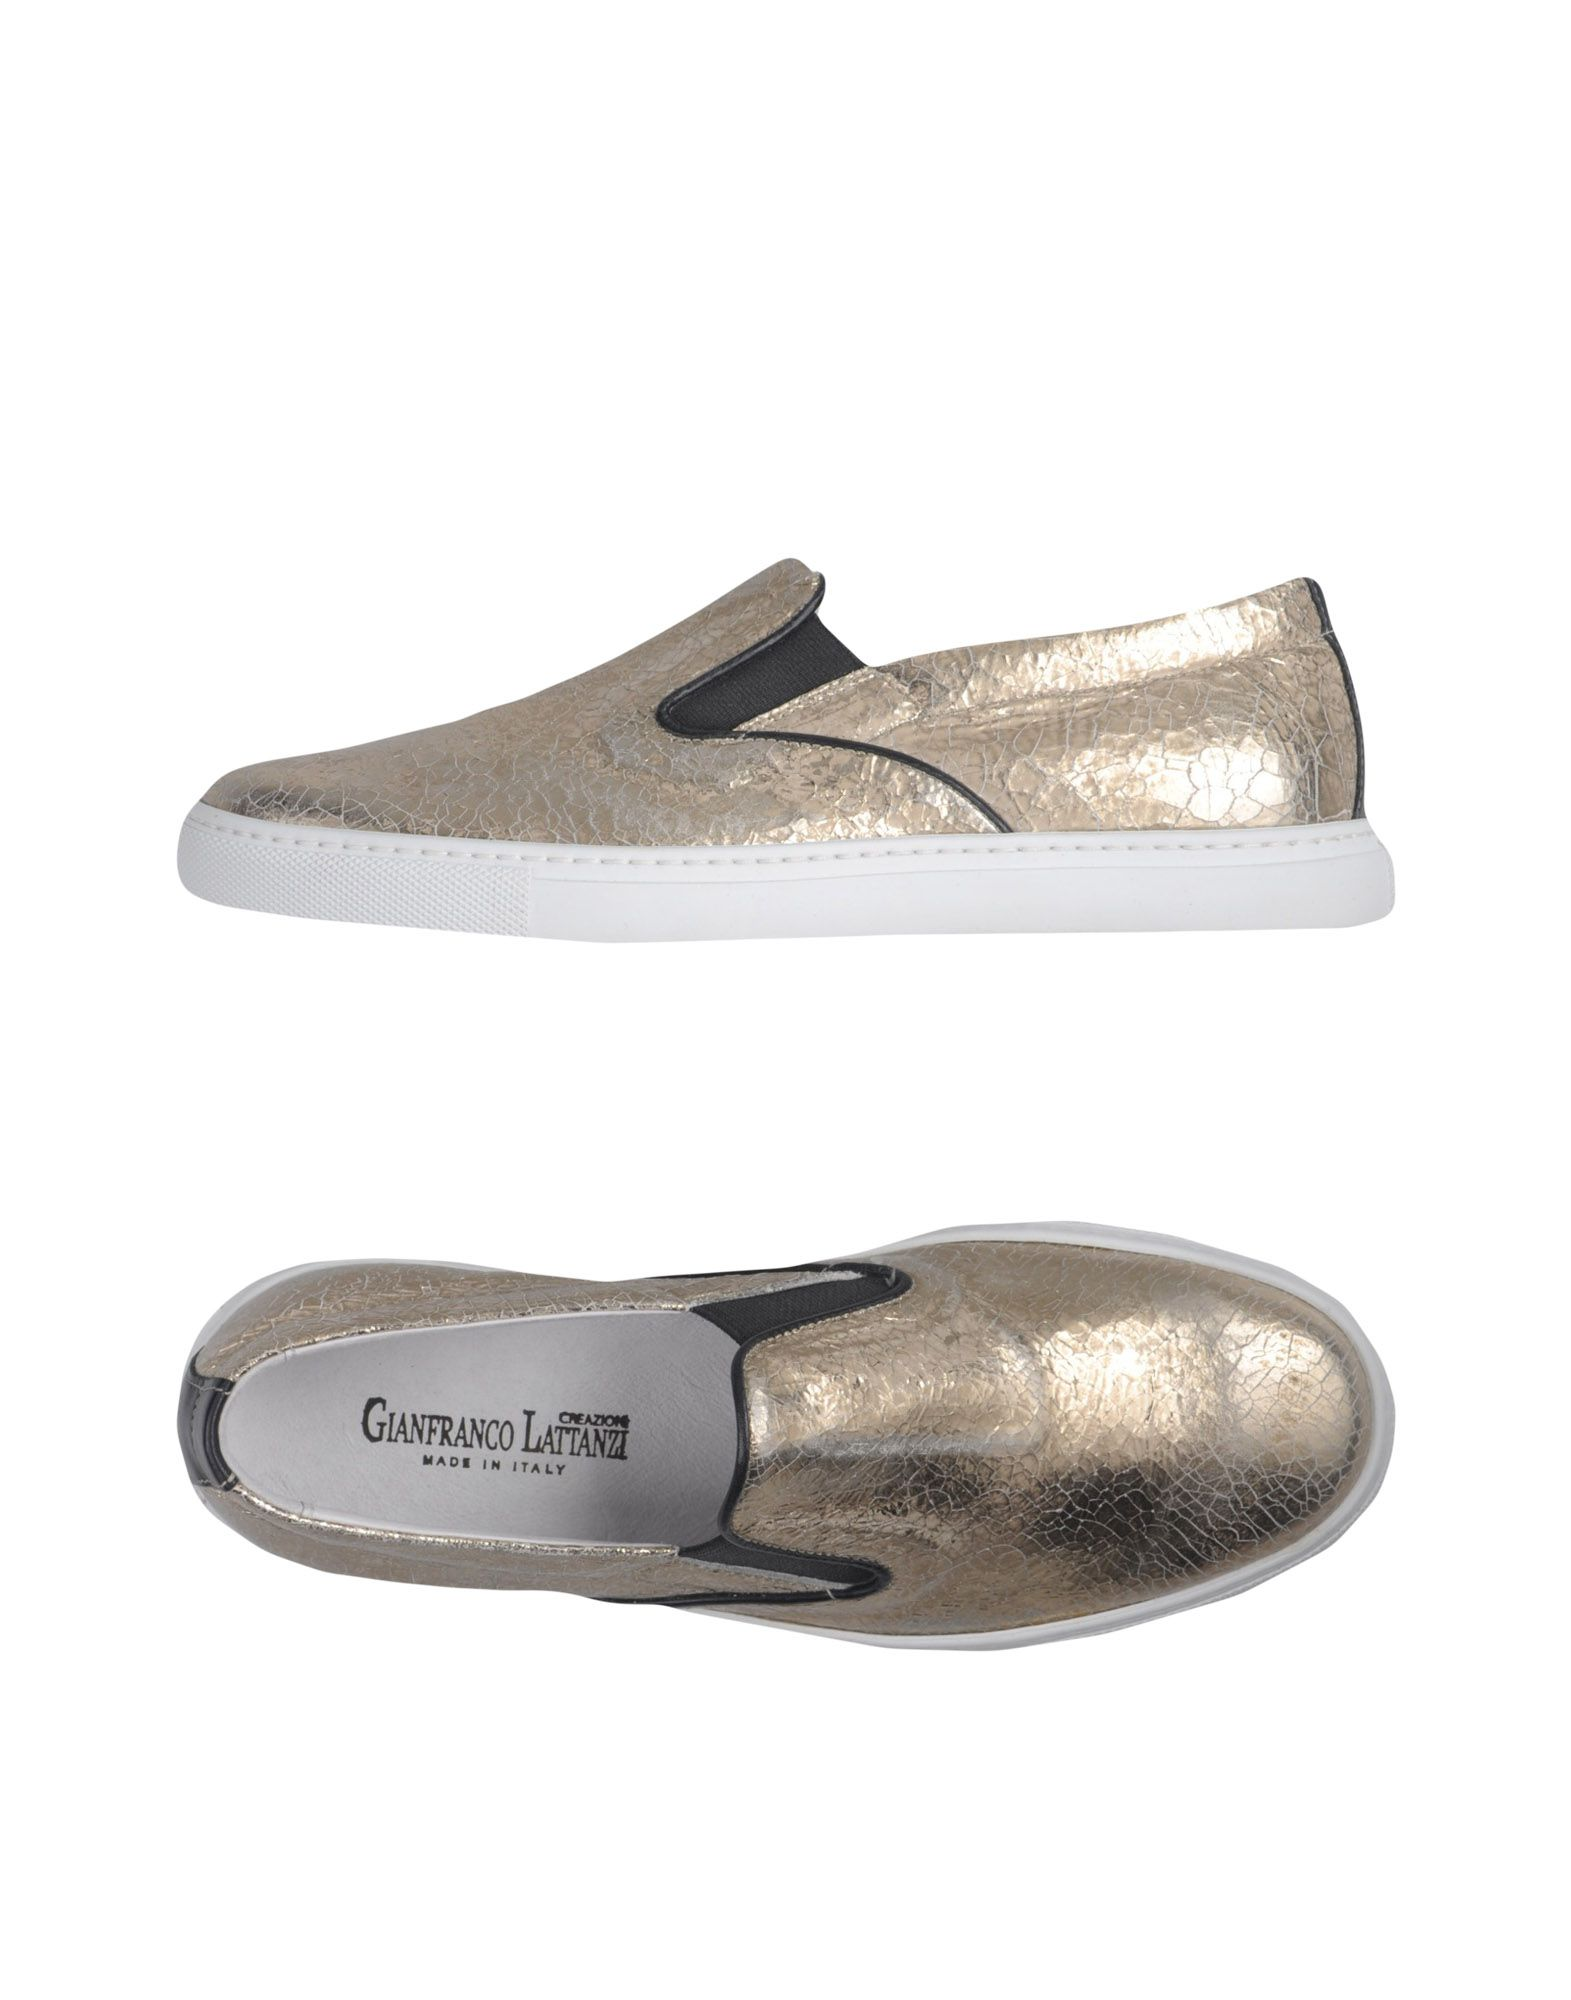 Sneakers Gianfranco Lattanzi Femme - Sneakers Gianfranco Lattanzi sur